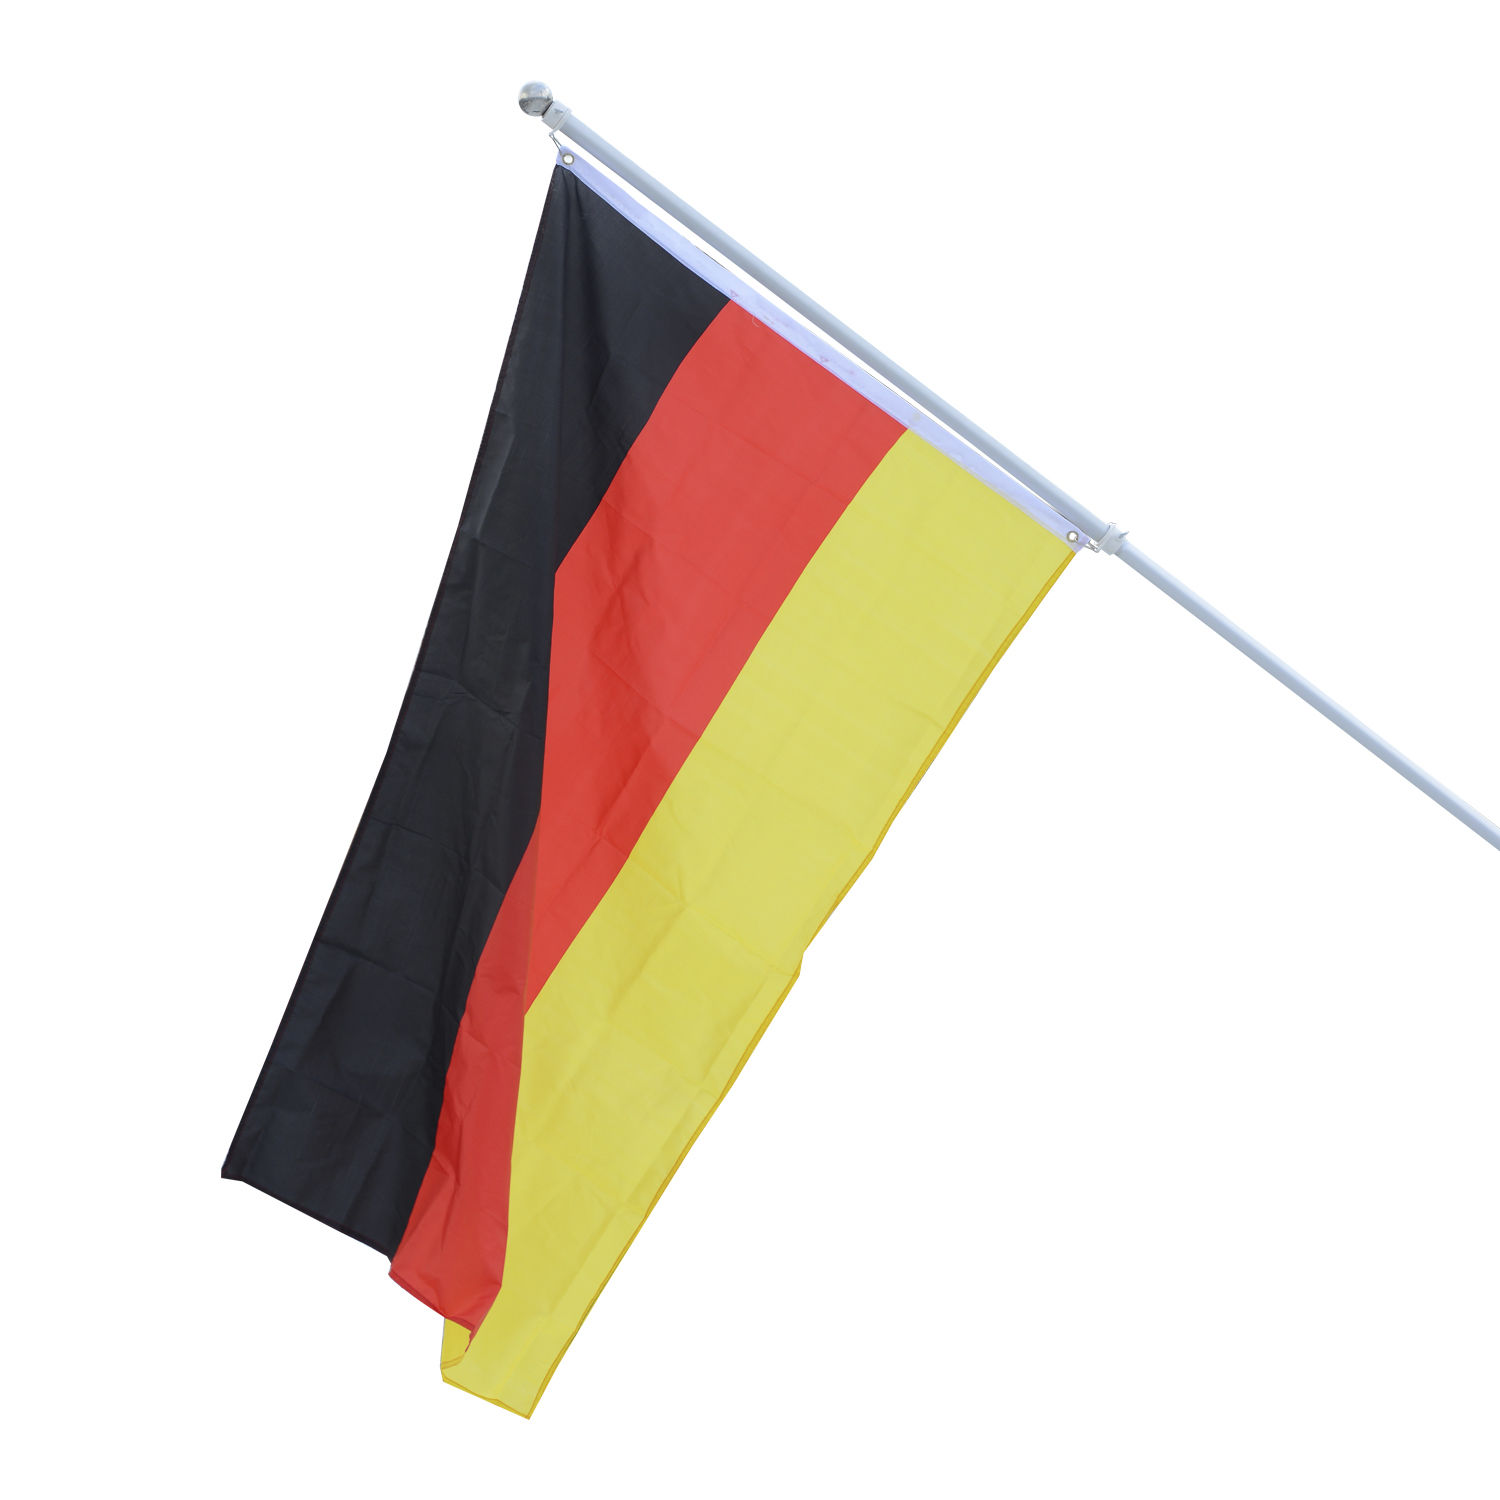 outsunny alu fahnenmast flaggenmast deutschlandfahne staatsflagge 150 x 90cm ebay. Black Bedroom Furniture Sets. Home Design Ideas